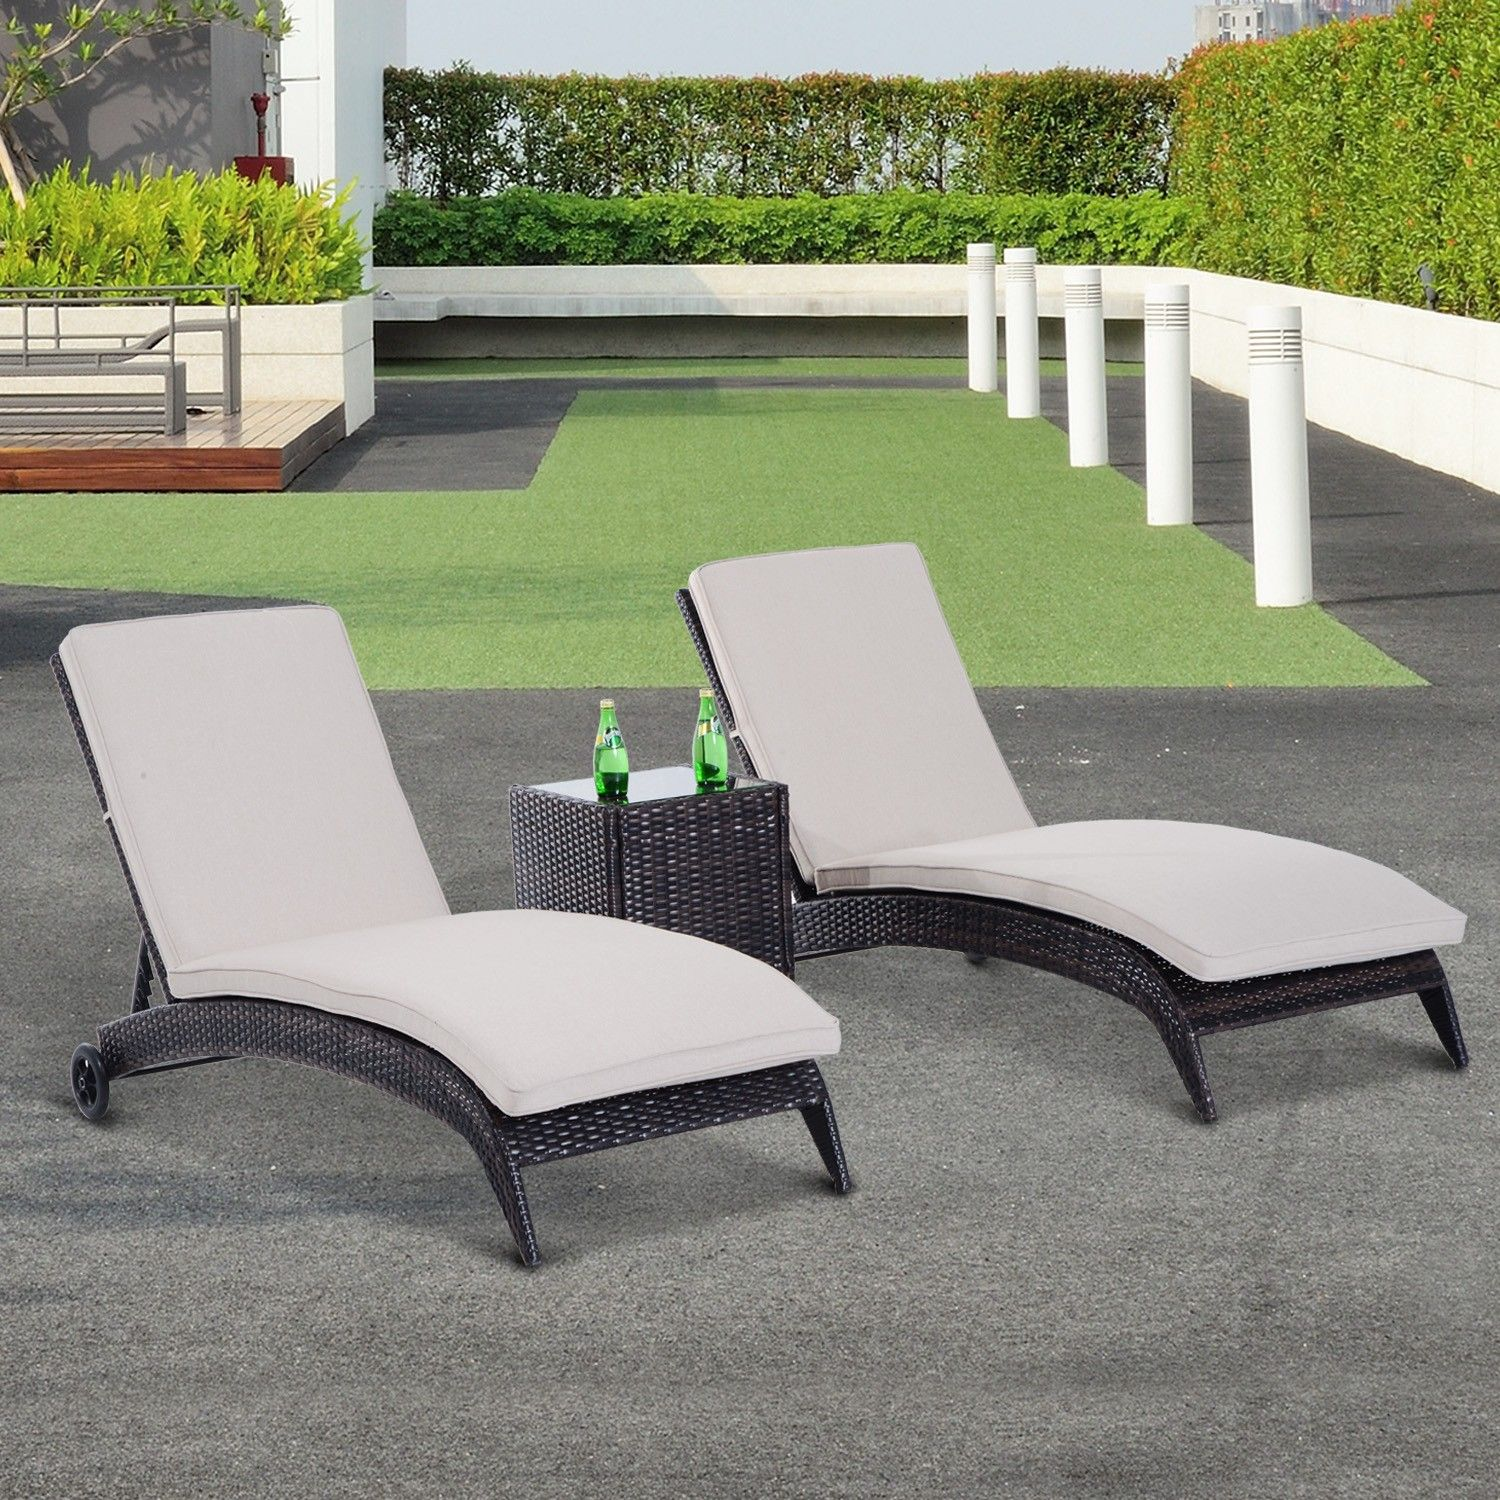 lawn amazon yard bar garden dp set outsunny bistro patio table stools with dining ca black rattan outdoor furniture wicker